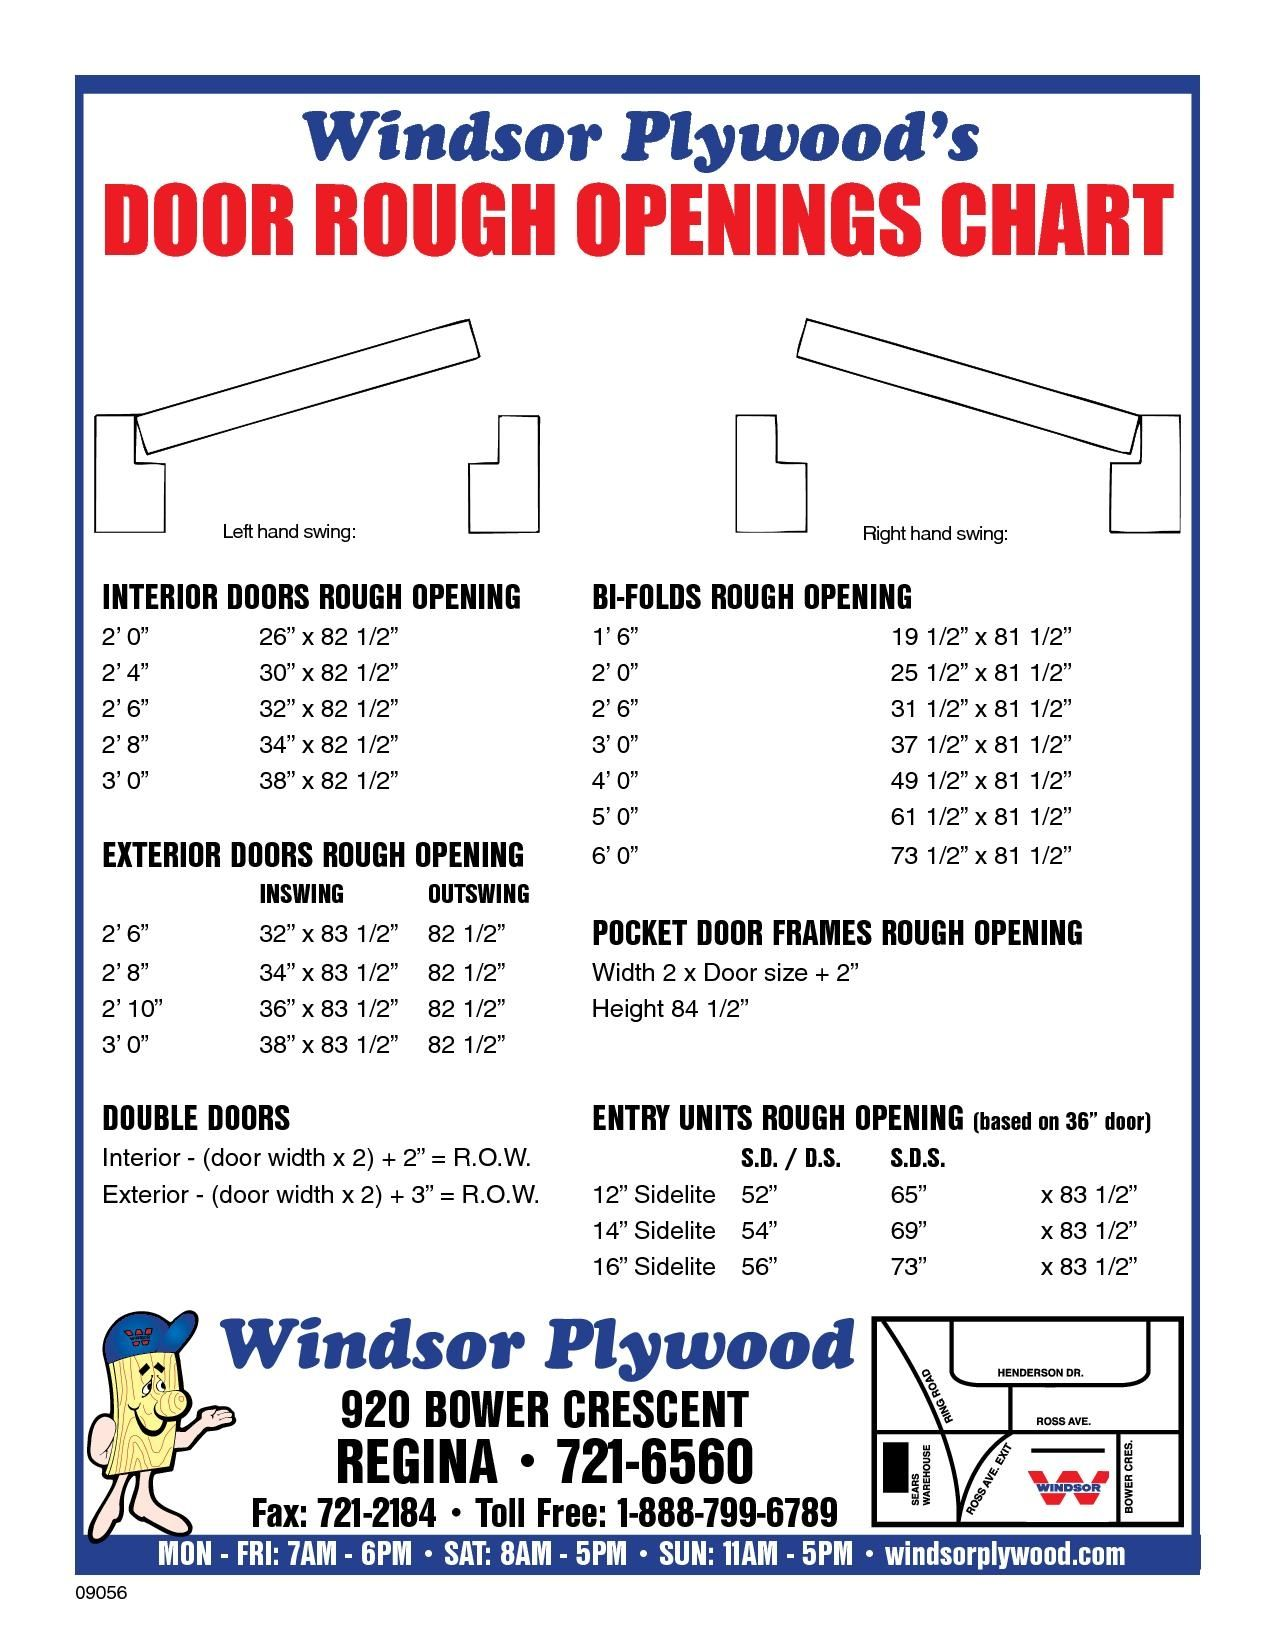 2 6 Door Rough Opening : rough, opening, Closet, Bifold, Rough, Opening, Cabinet, Vital, Provide, Extra, Storage, Space., Th…, Garage, Sizes,, Doors, Interior,